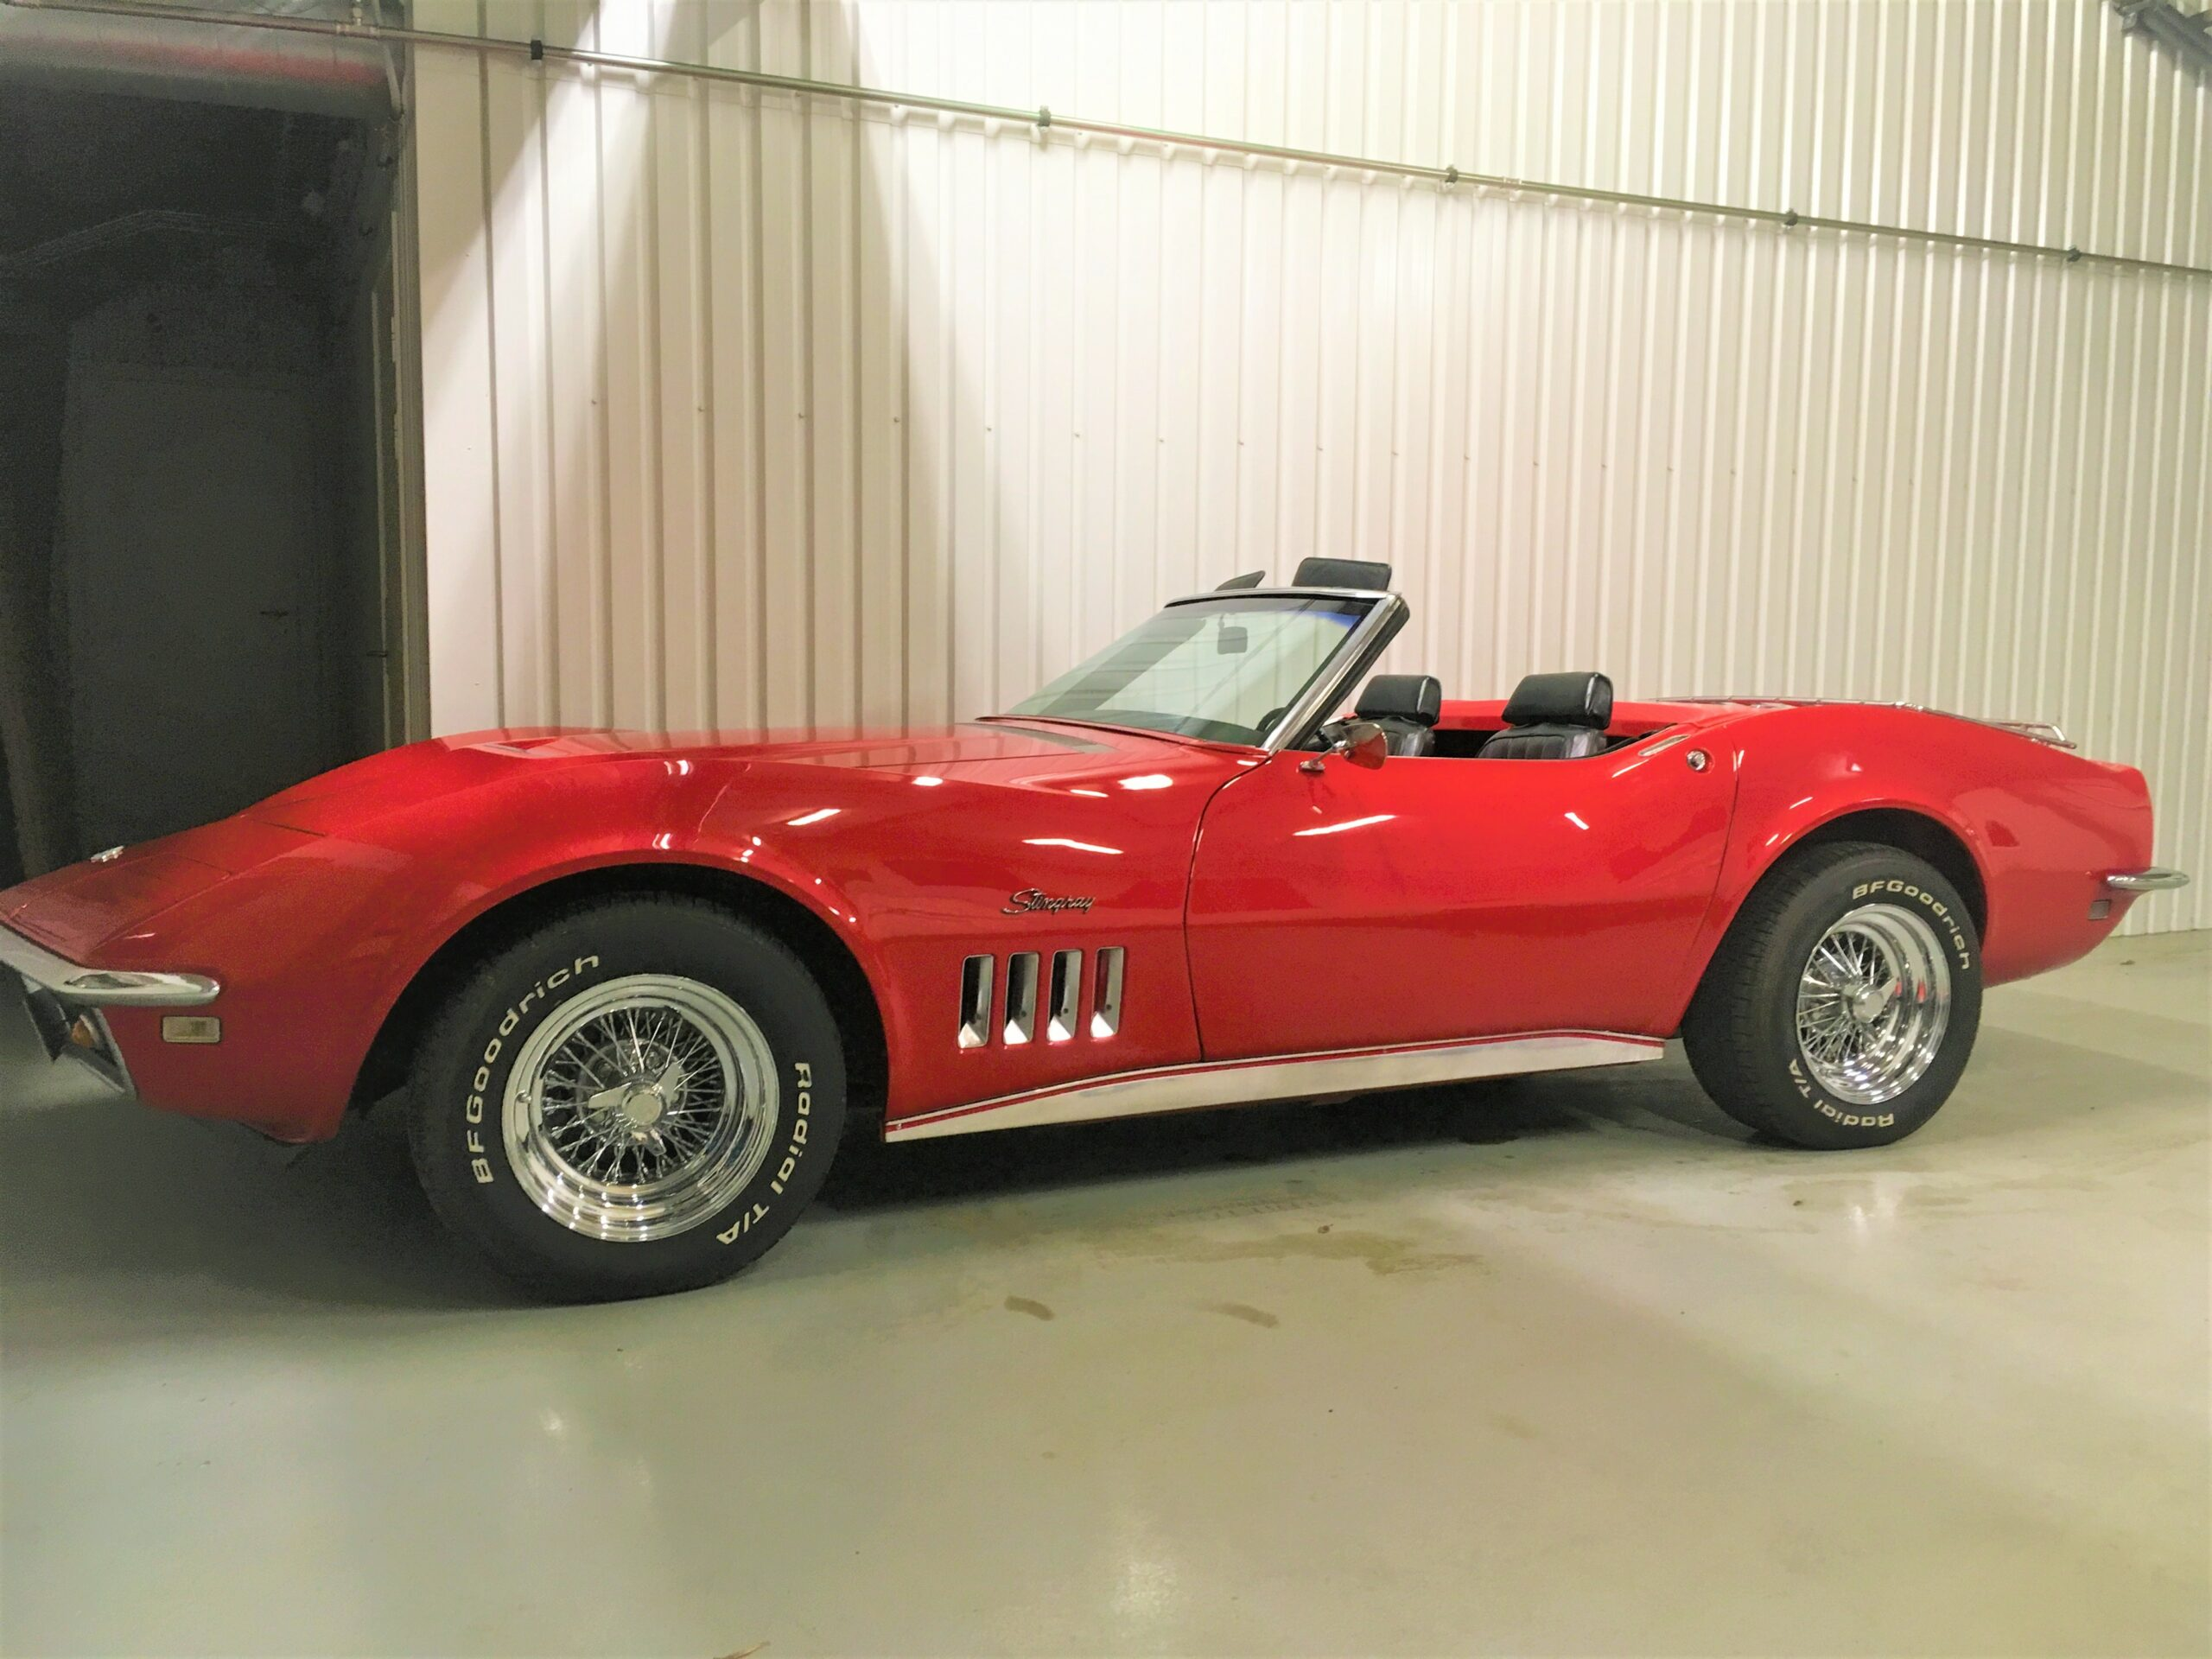 1968 Chevrolet Corvette cab